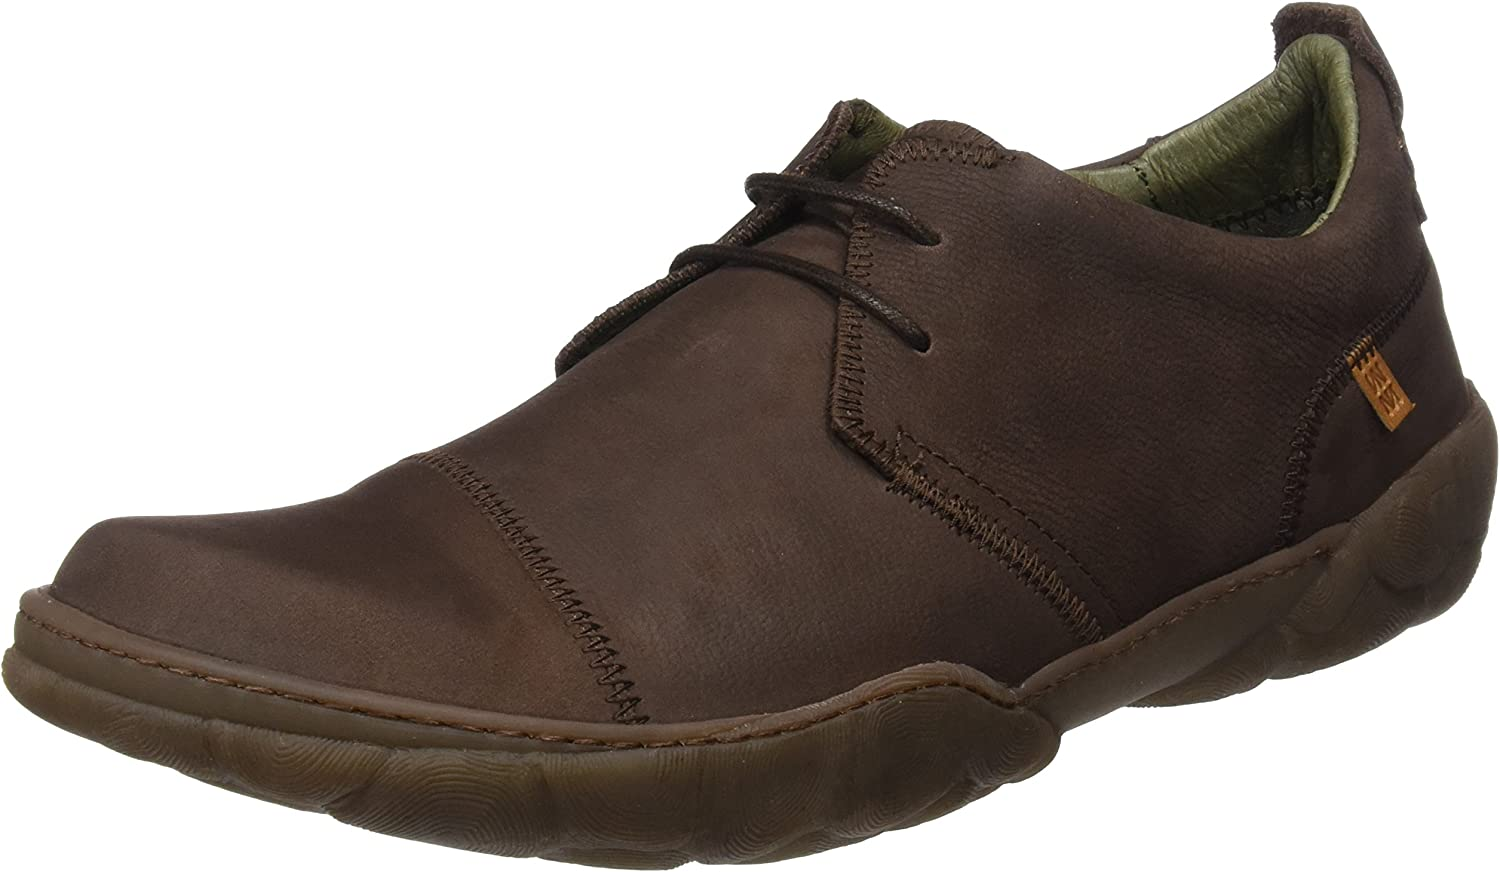 El Naturalista N5080 Pleasant Brown/Turtle, Zapatos de Cordones Brogue para Hombre